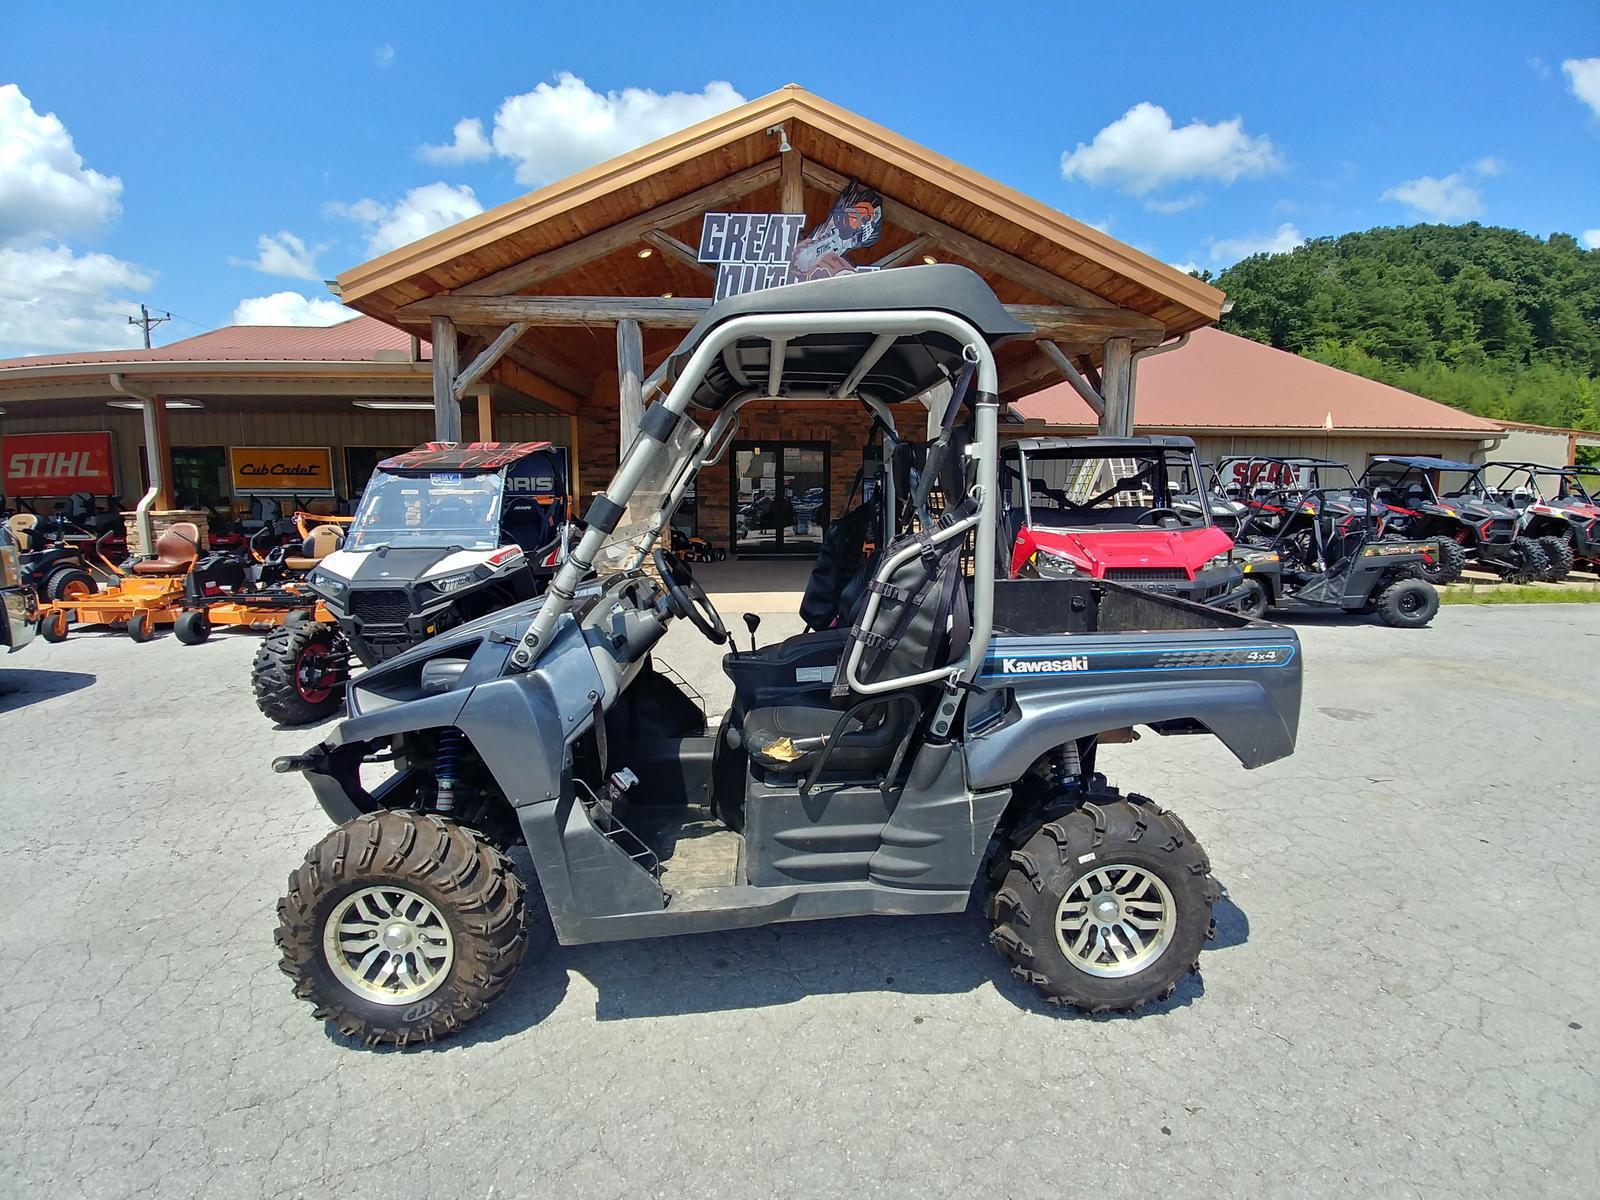 Inventory Great Outdoor Powersports & Lawn Morehead, KY (606